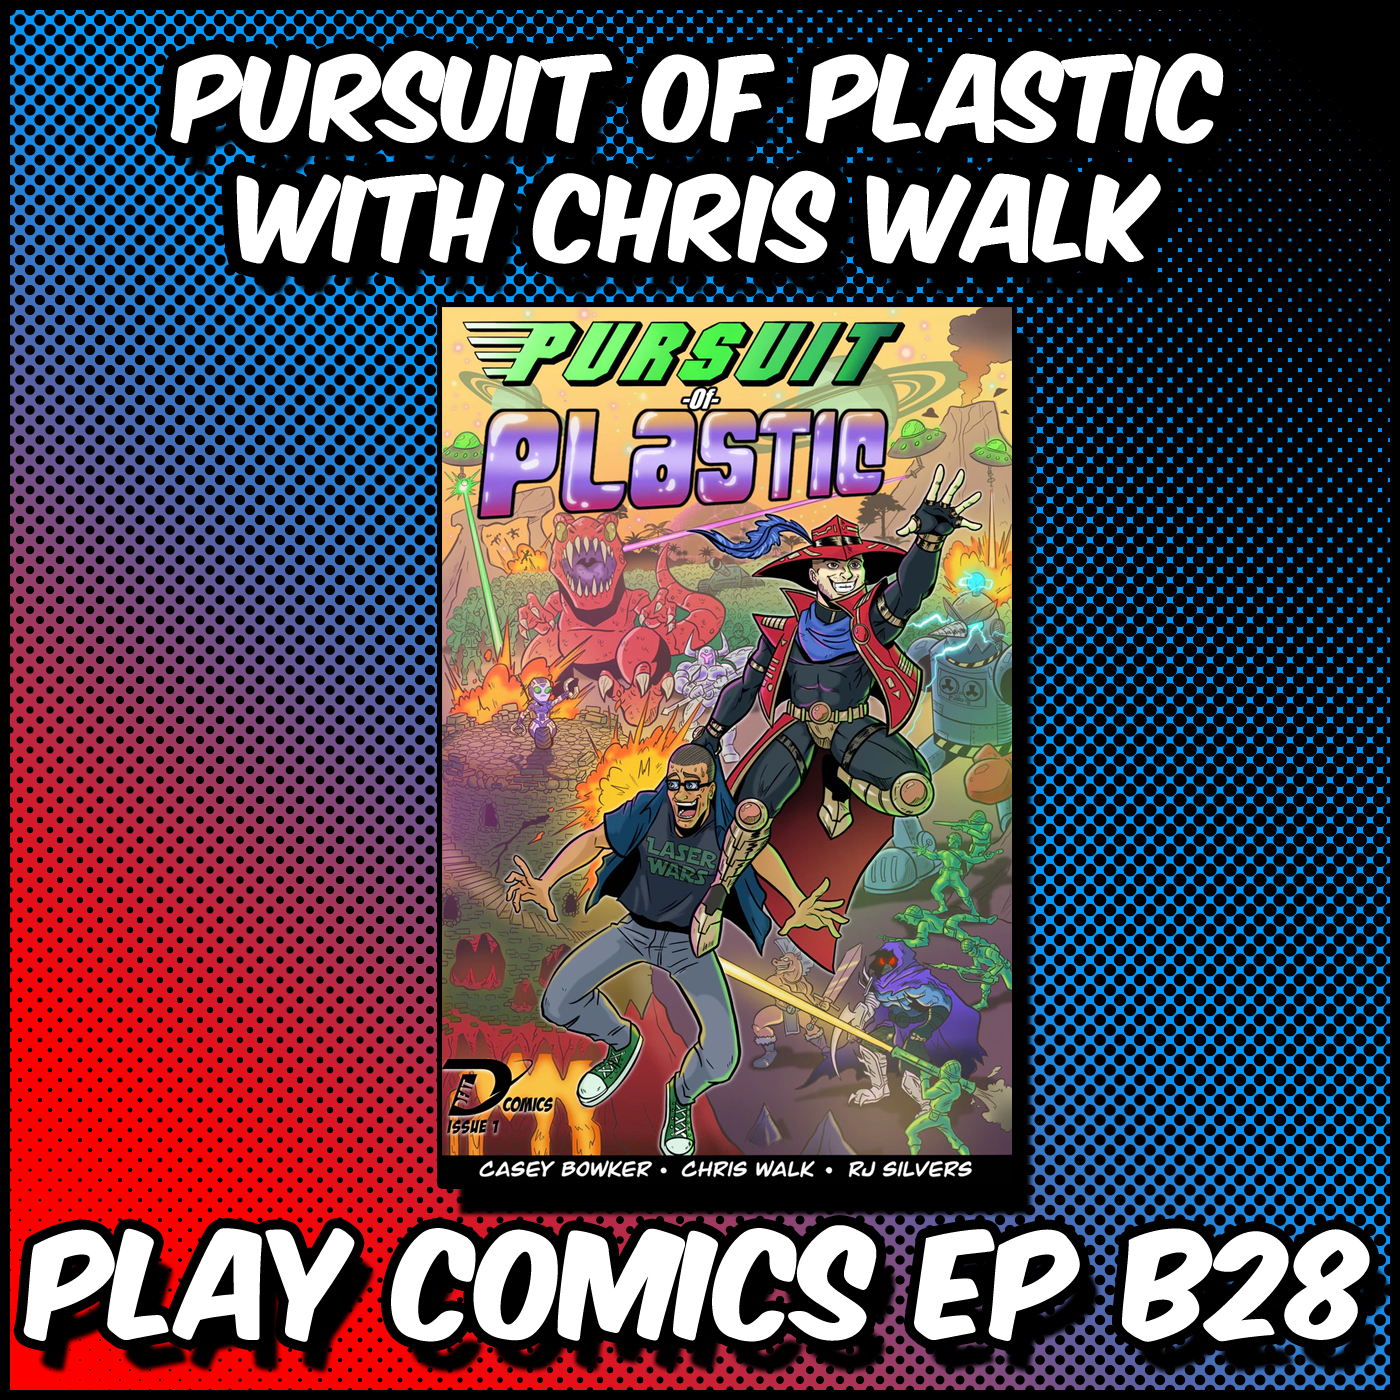 Pursuit of Plastic with Chris Walk